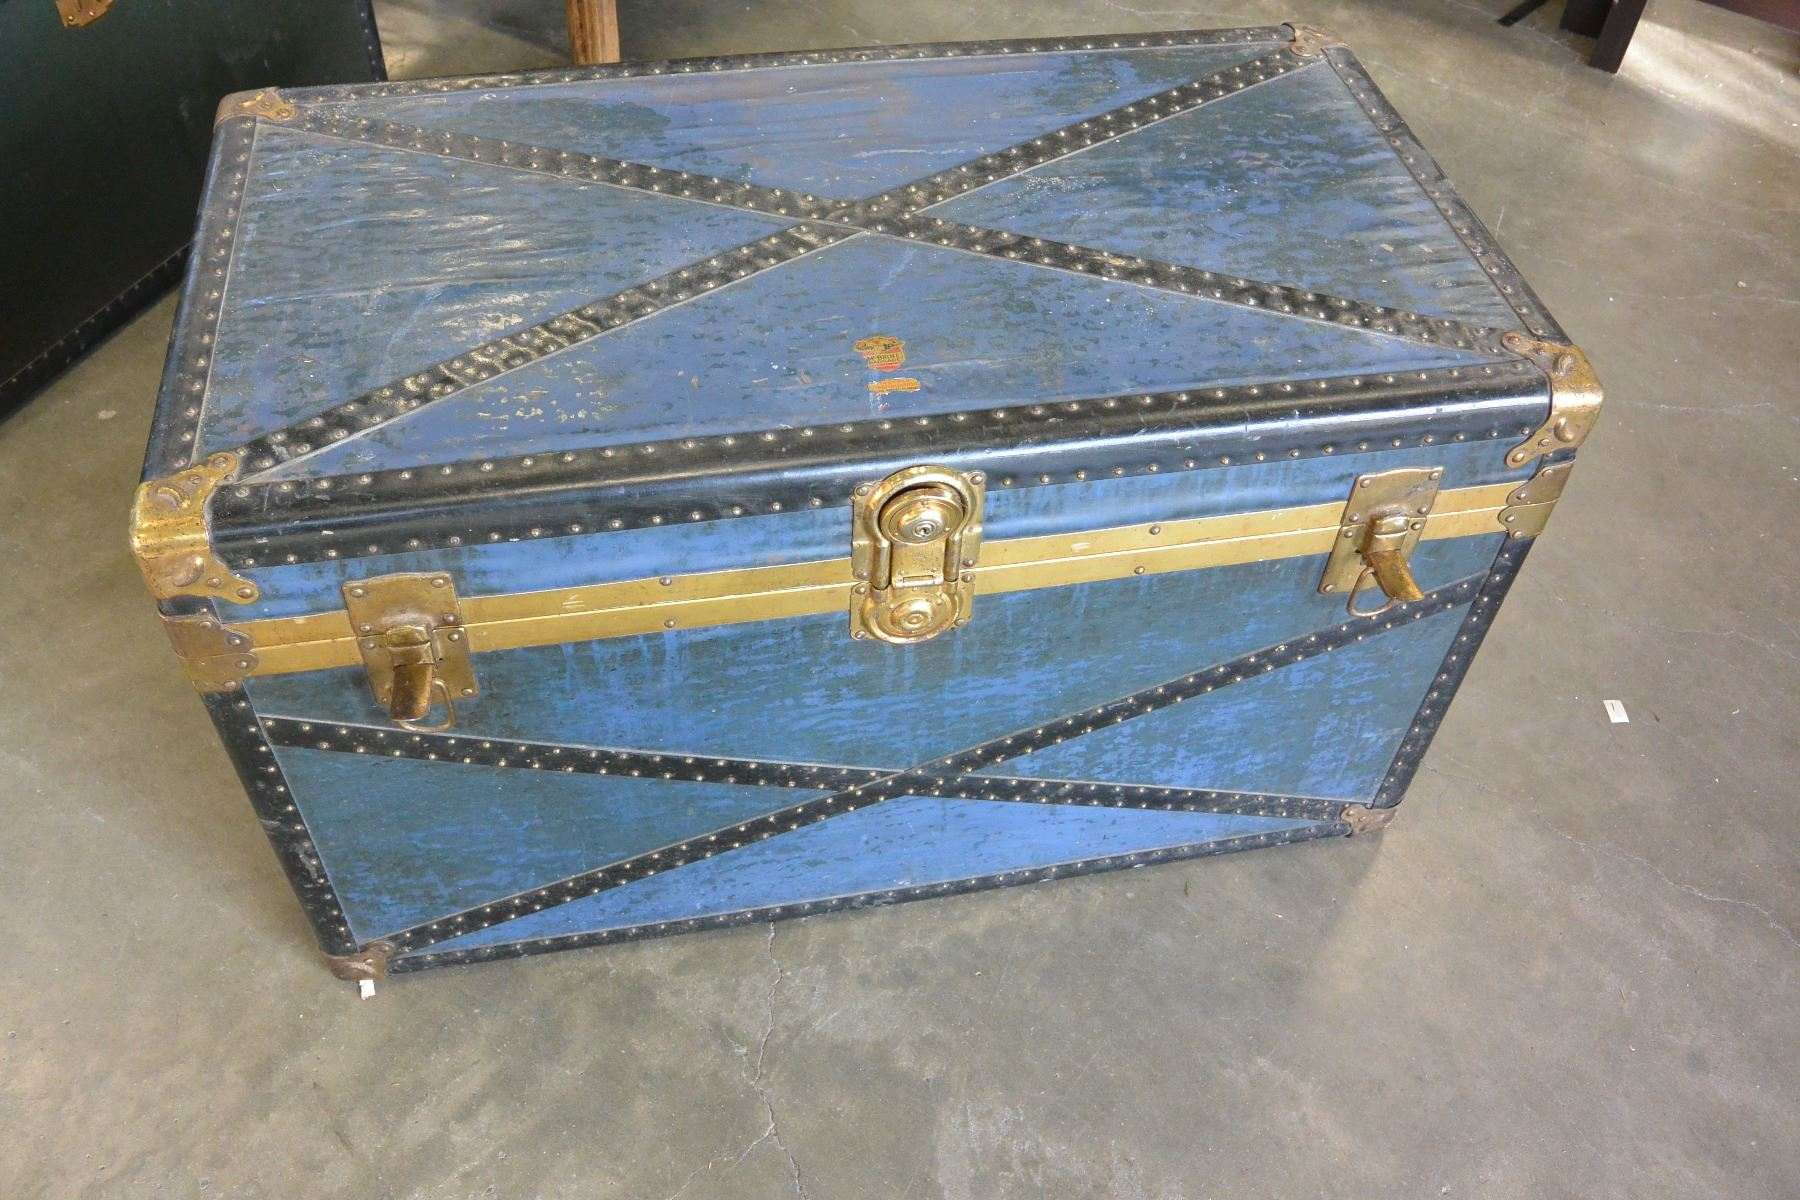 Image 1 : BLUE STORAGE TRUNK WITH TRAY ...